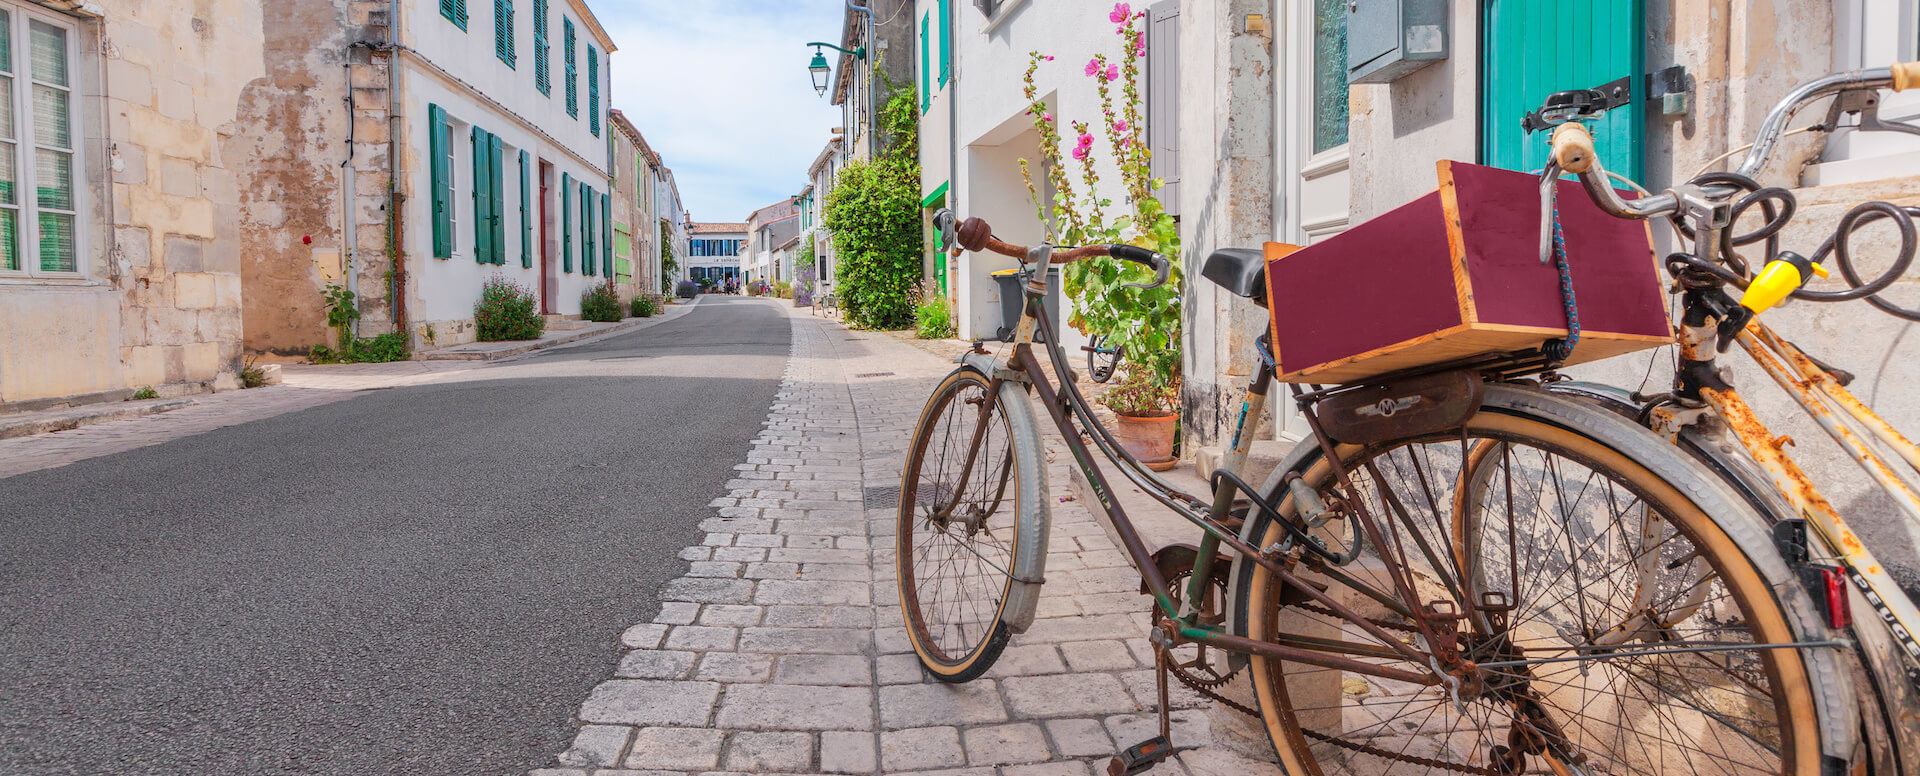 The bicycle: the means of transport - Île de Ré